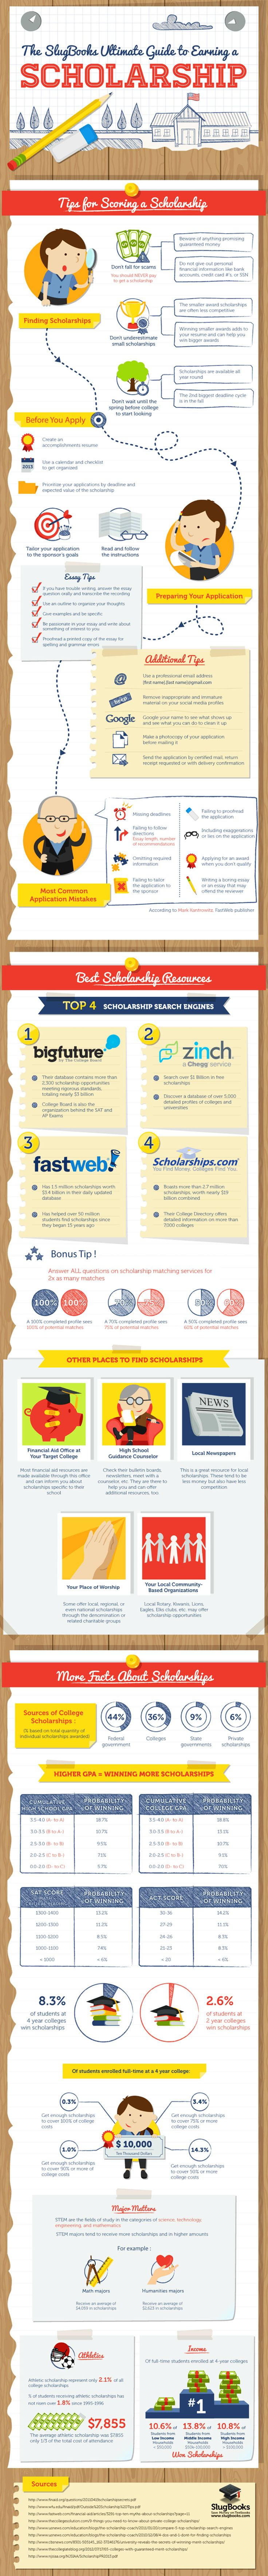 How to Apply for Scholarships for College Infographic